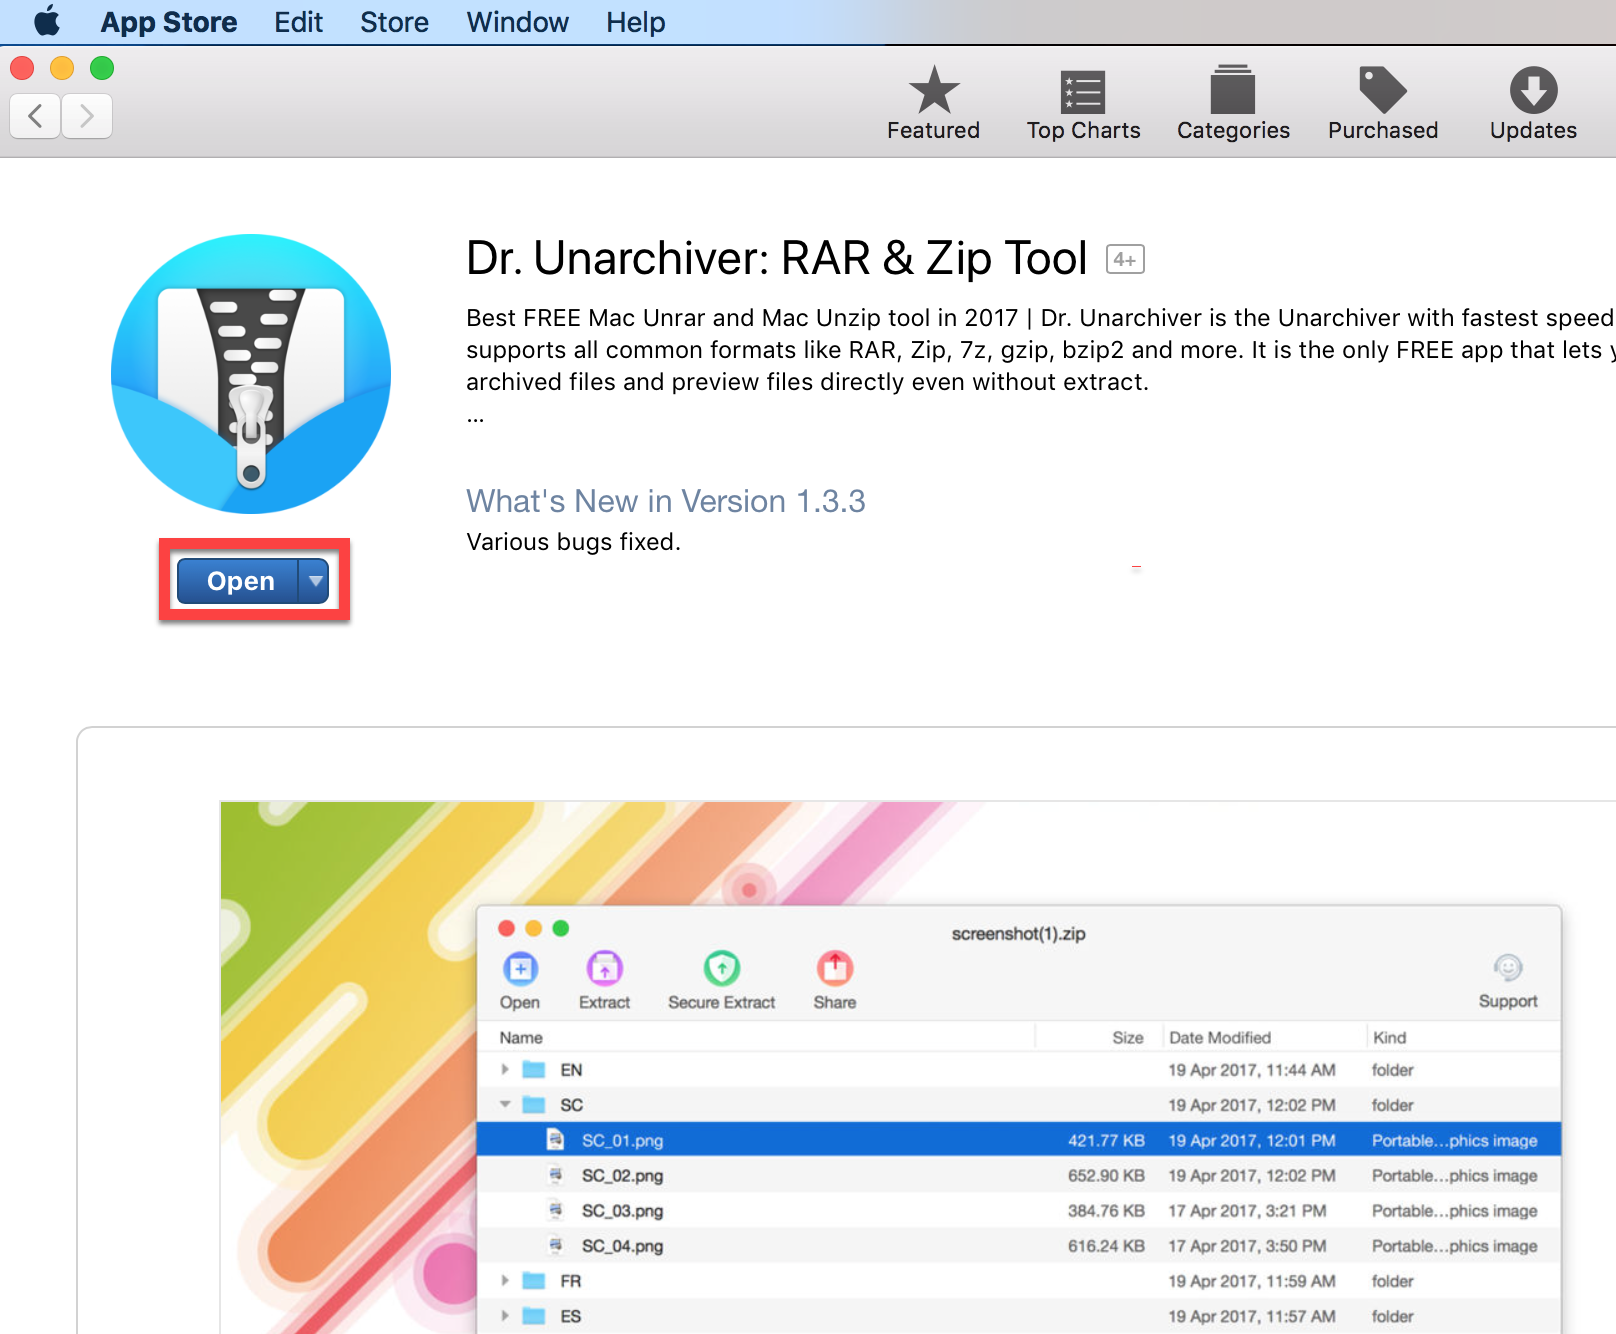 Get the Dr. Unarchiver app